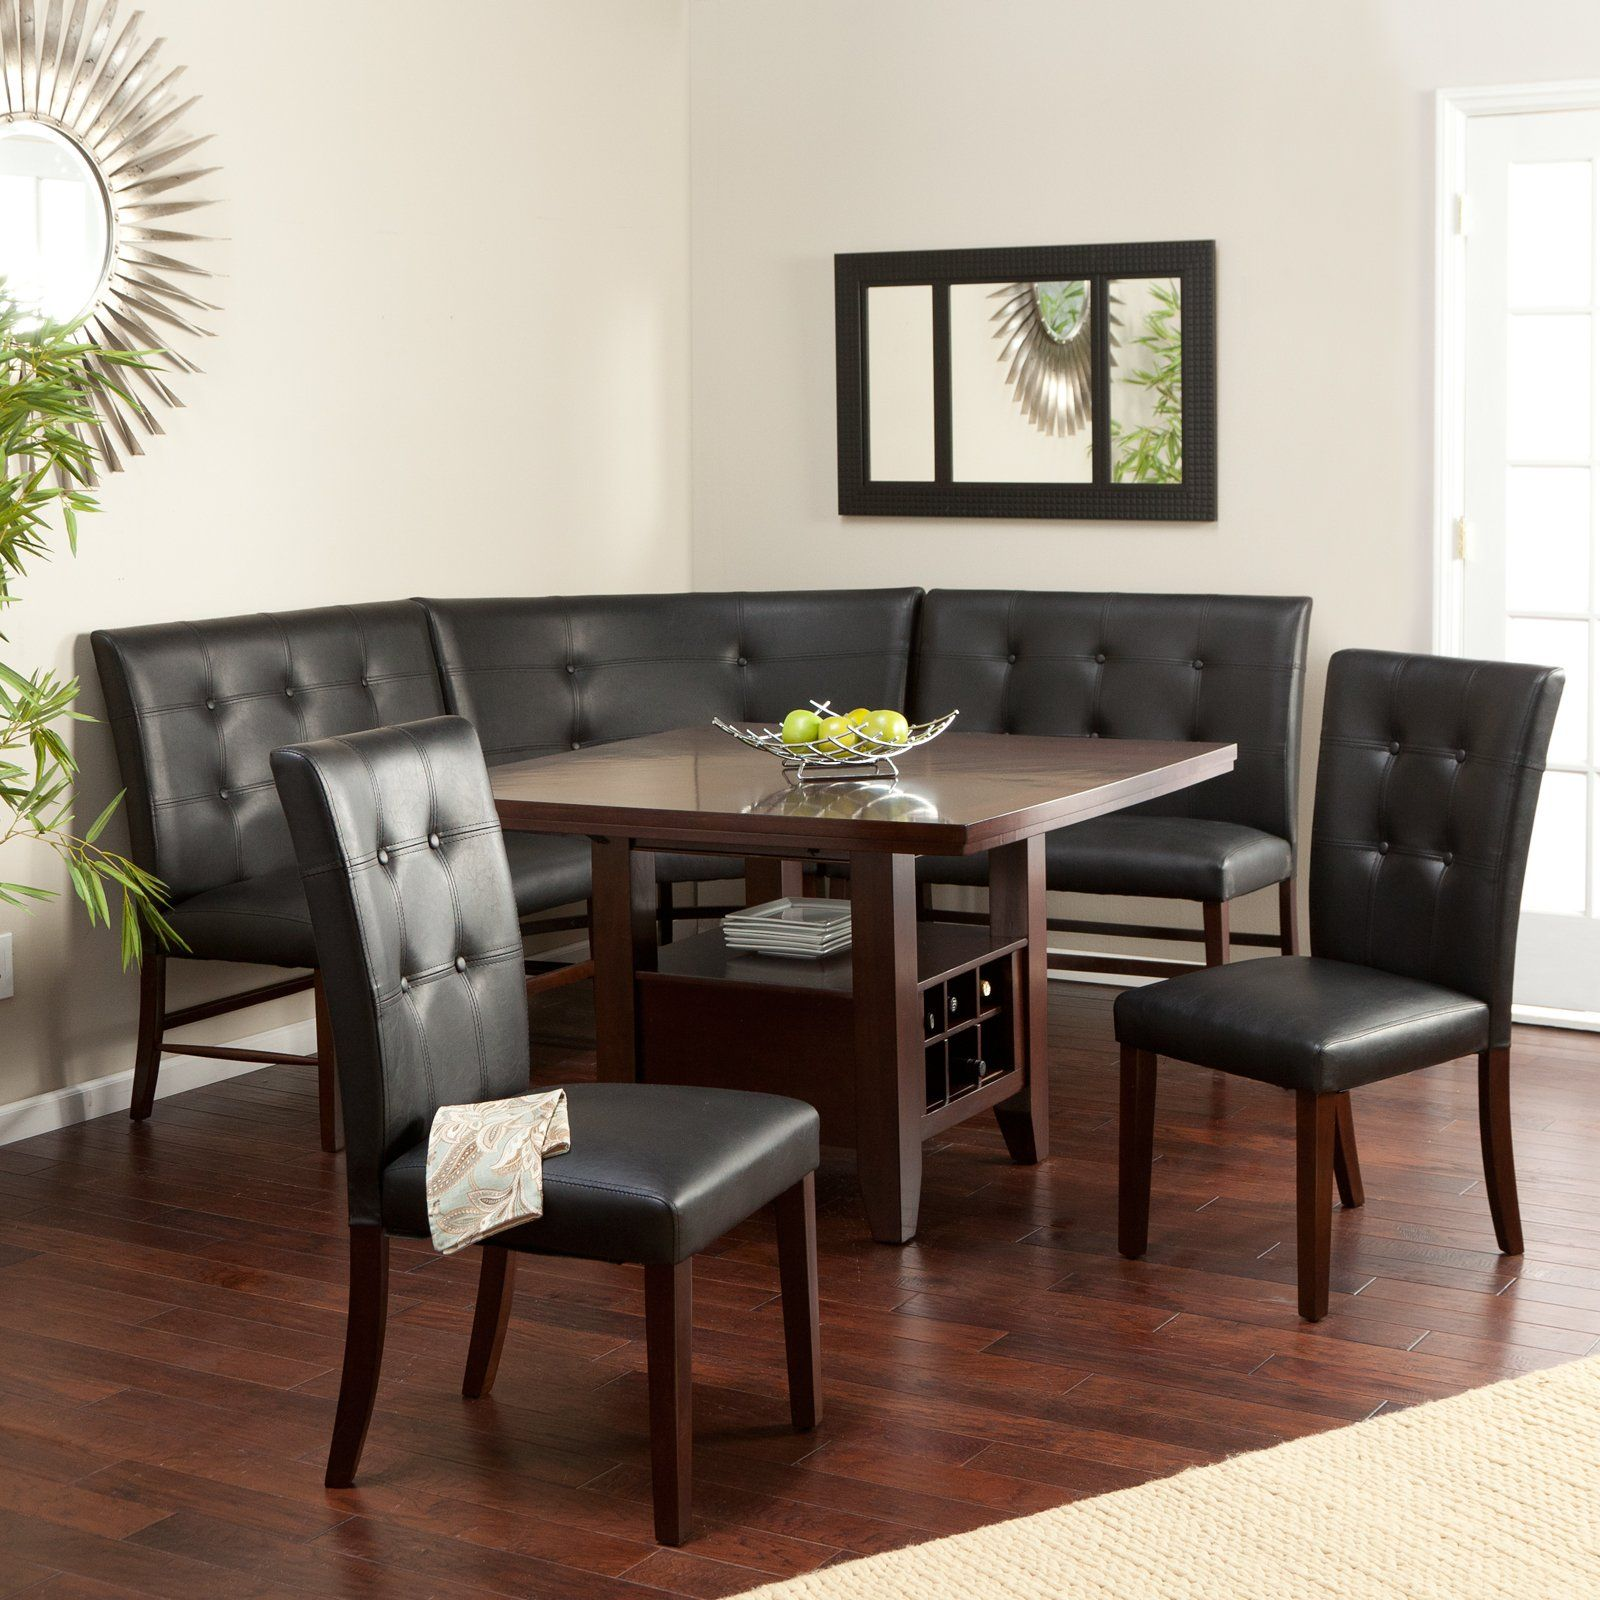 Kitchen table with bench seating and chairs  Chanie Giro chaniegiro on Pinterest